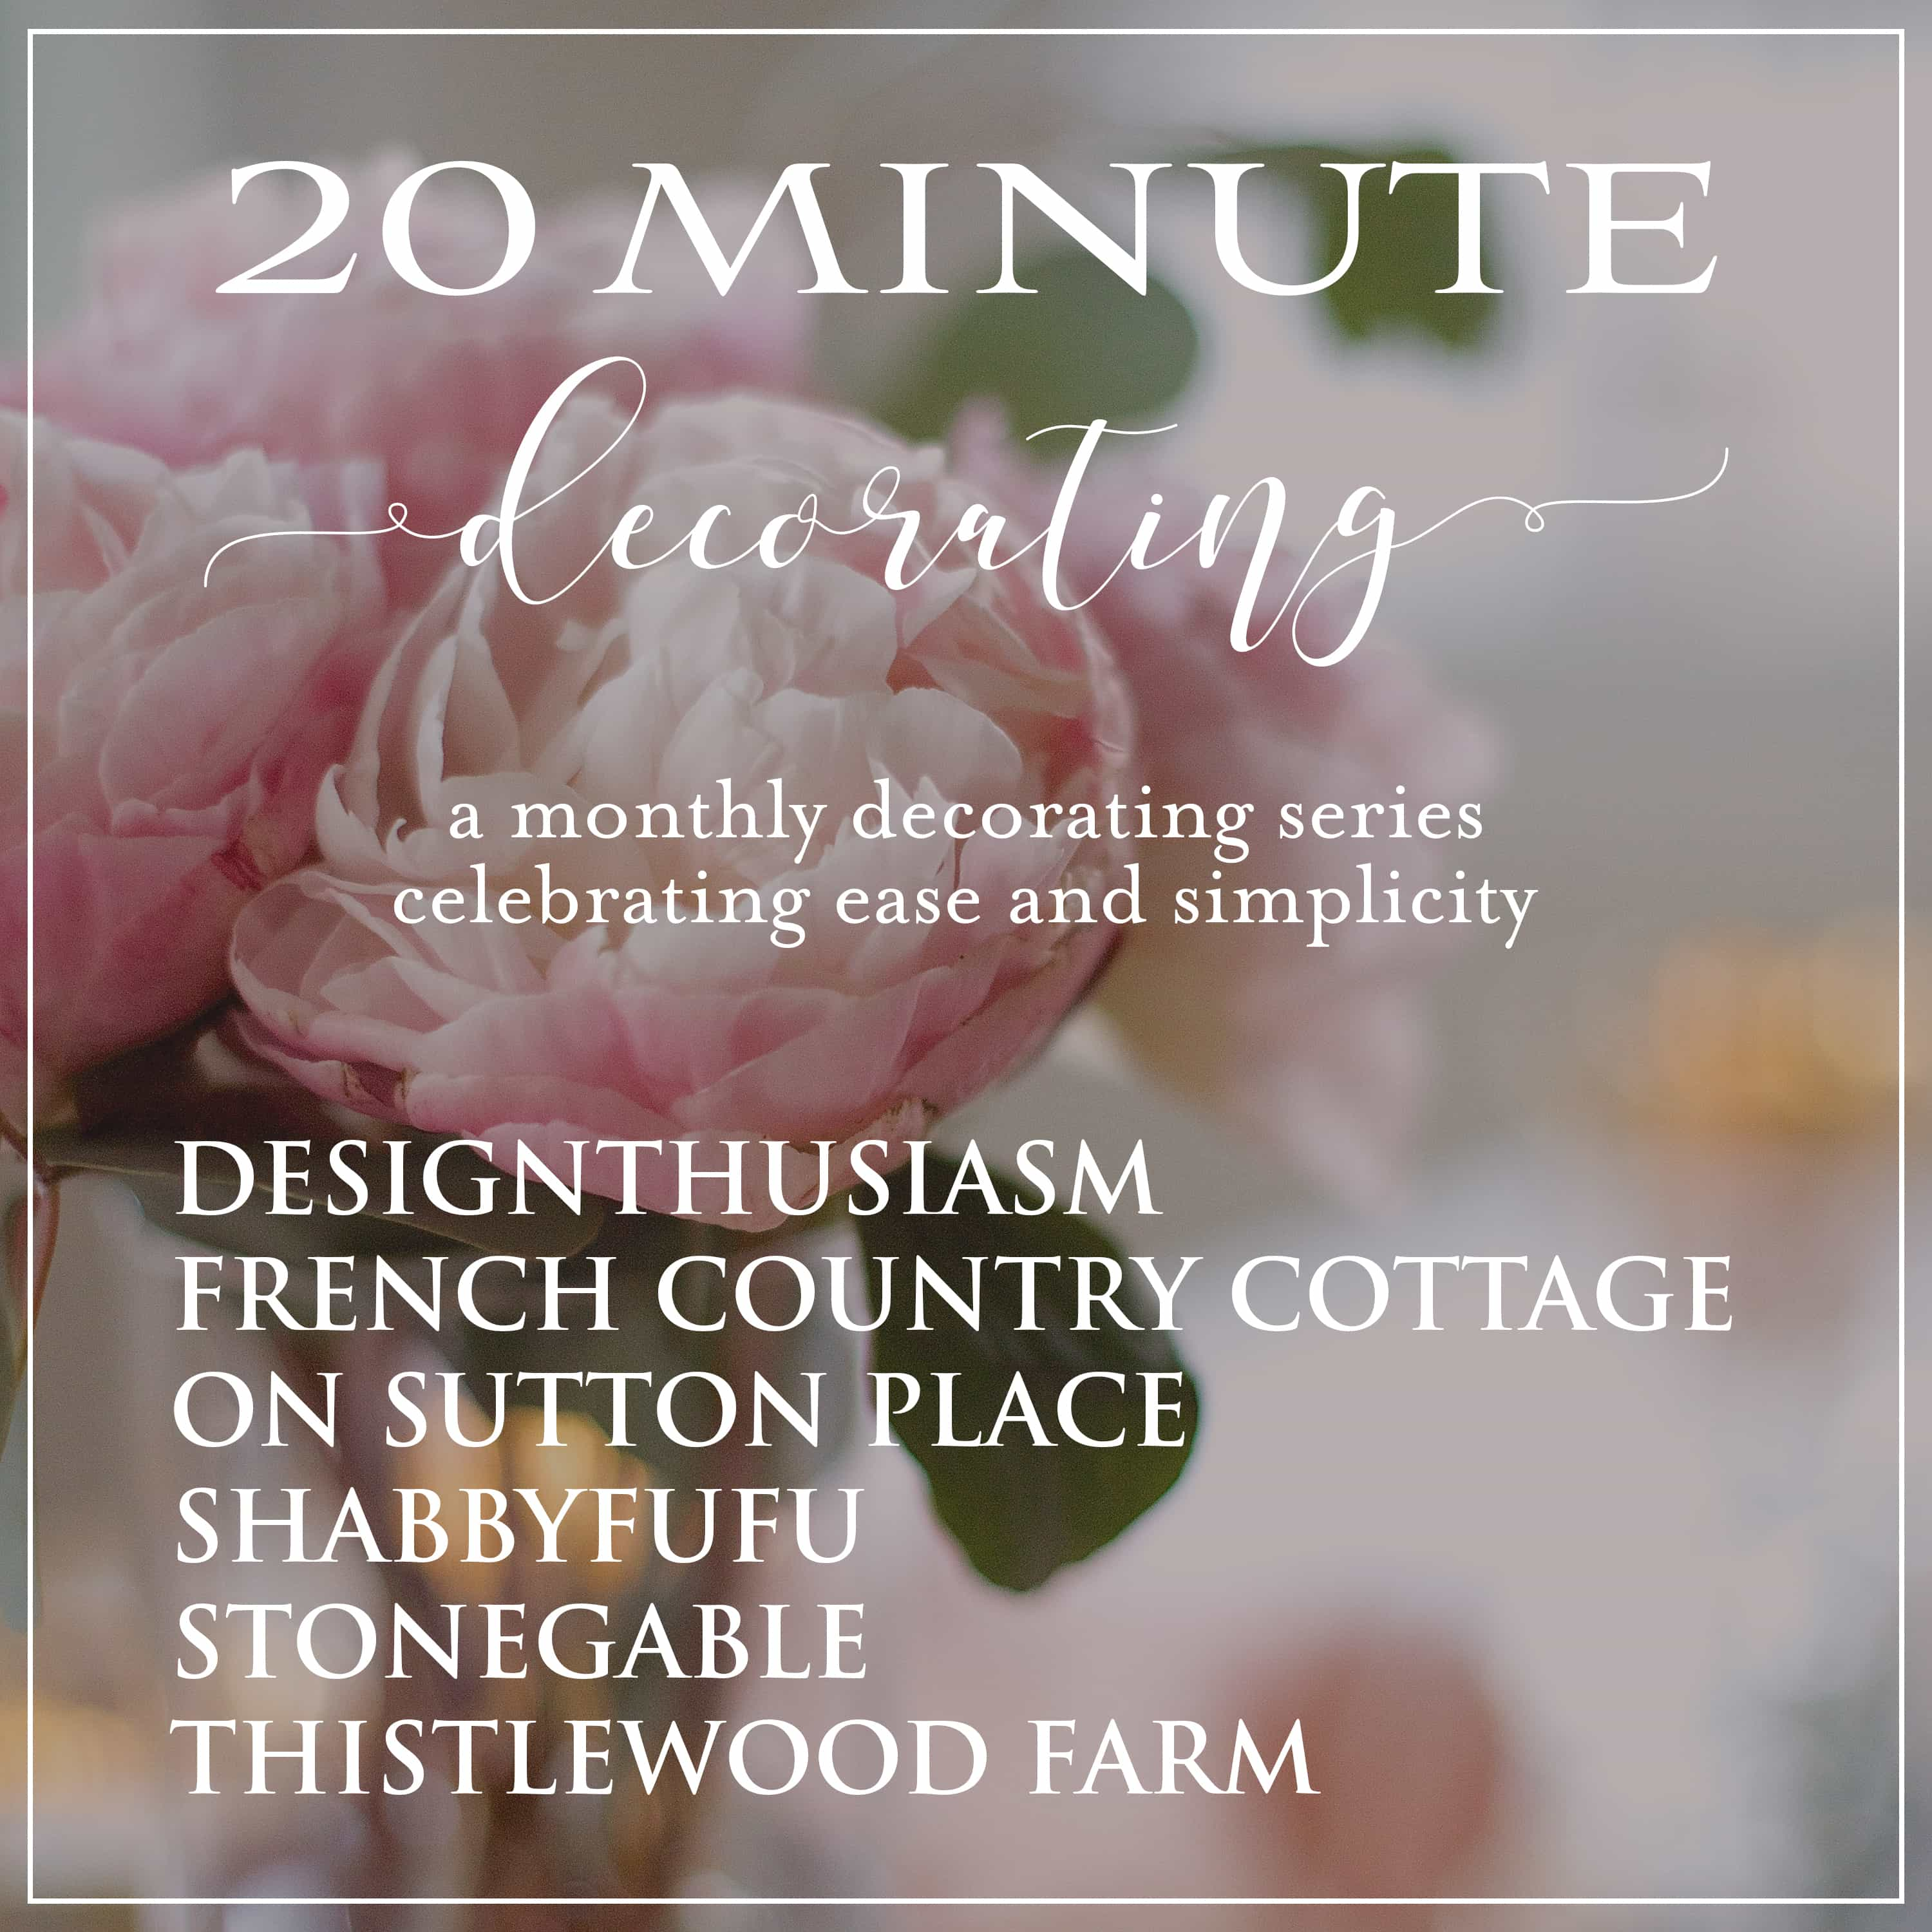 20 Minute Decorating series logo